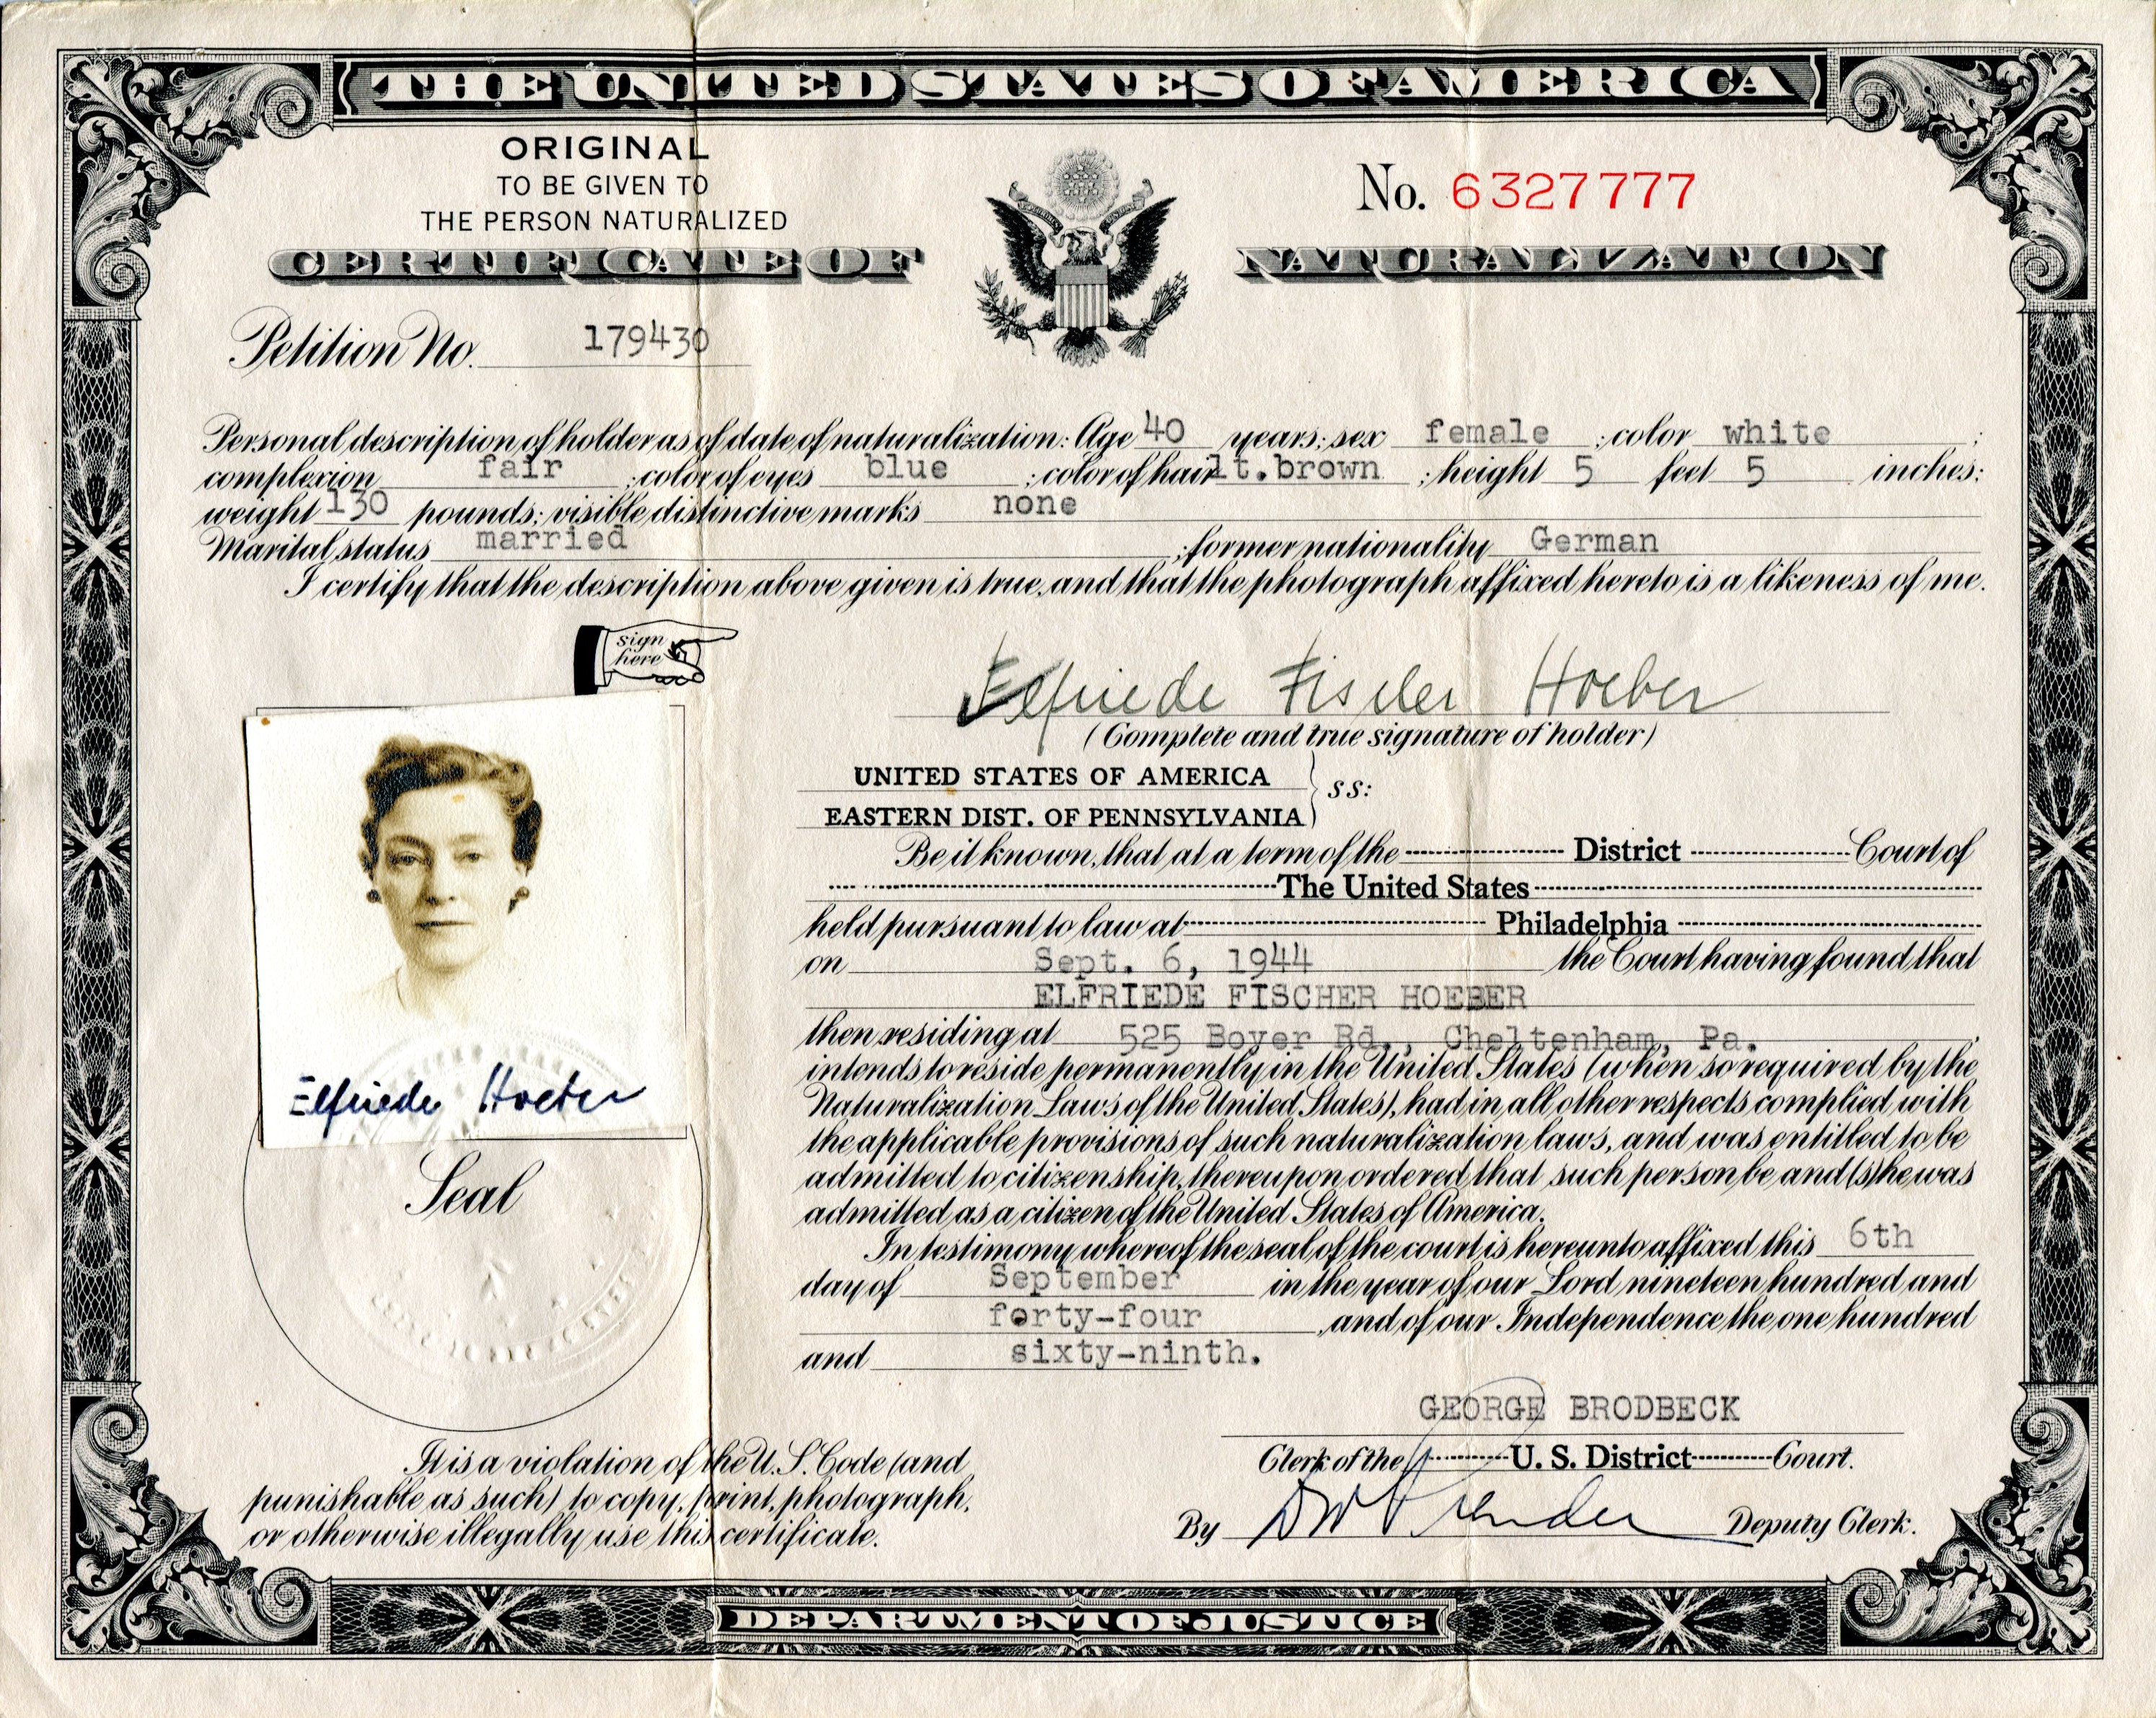 Right to vote hoeber citizenship certificate of my mother elfriede fischer hoeber september 6 1944 xflitez Choice Image